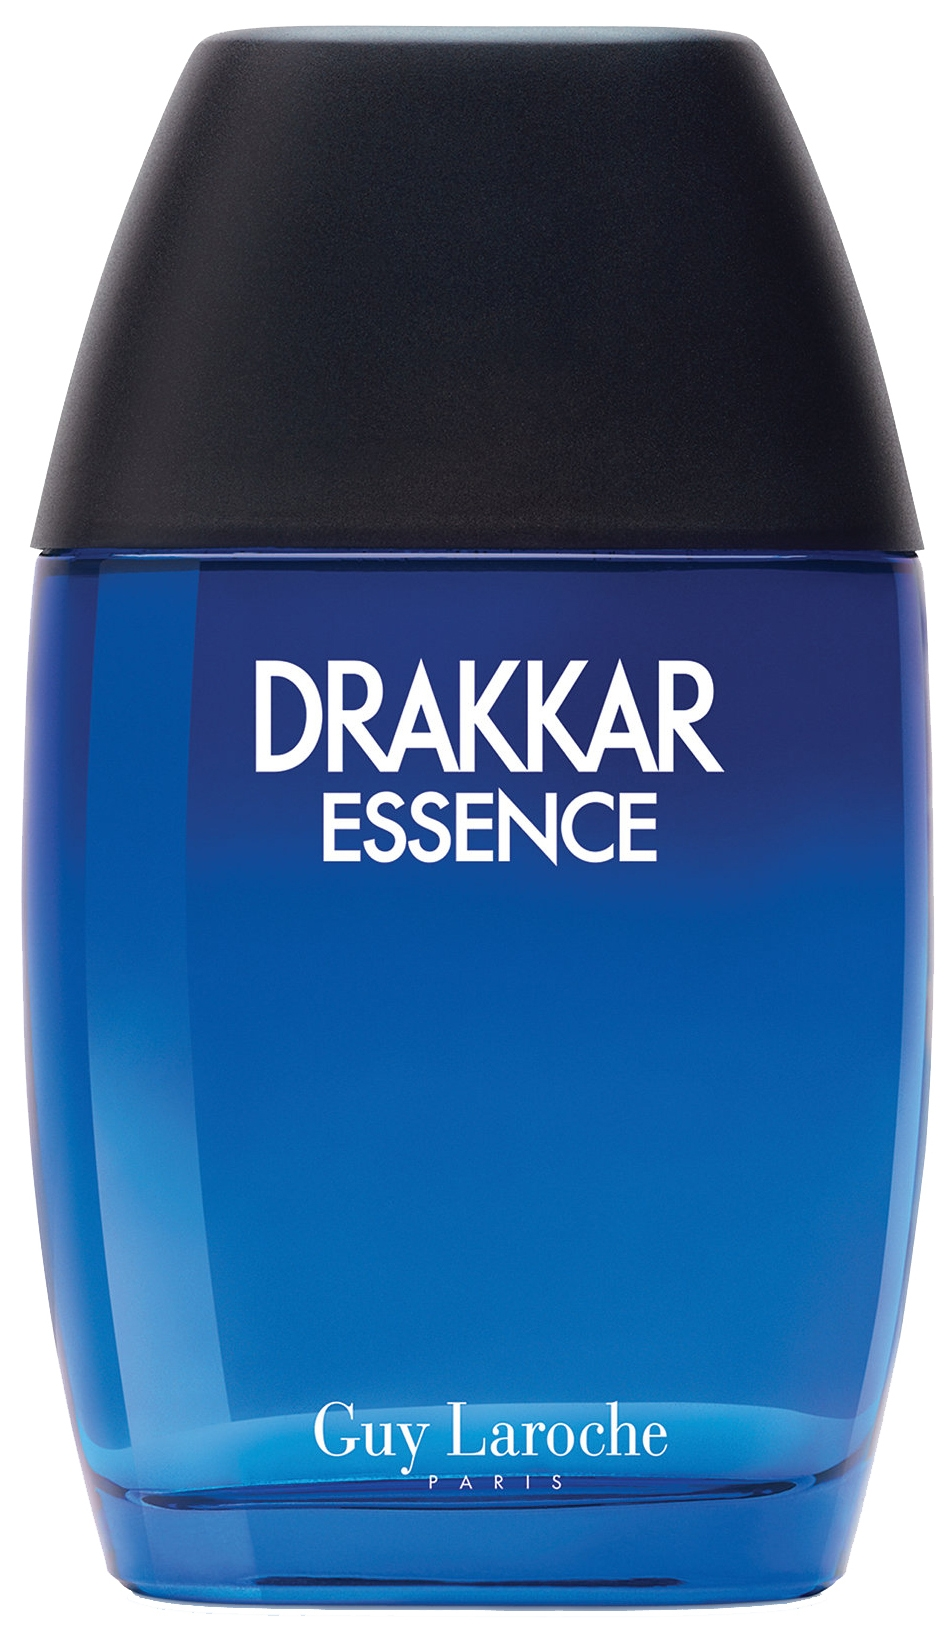 Guy Laroche Drakkar Essence (M) edt 50ml